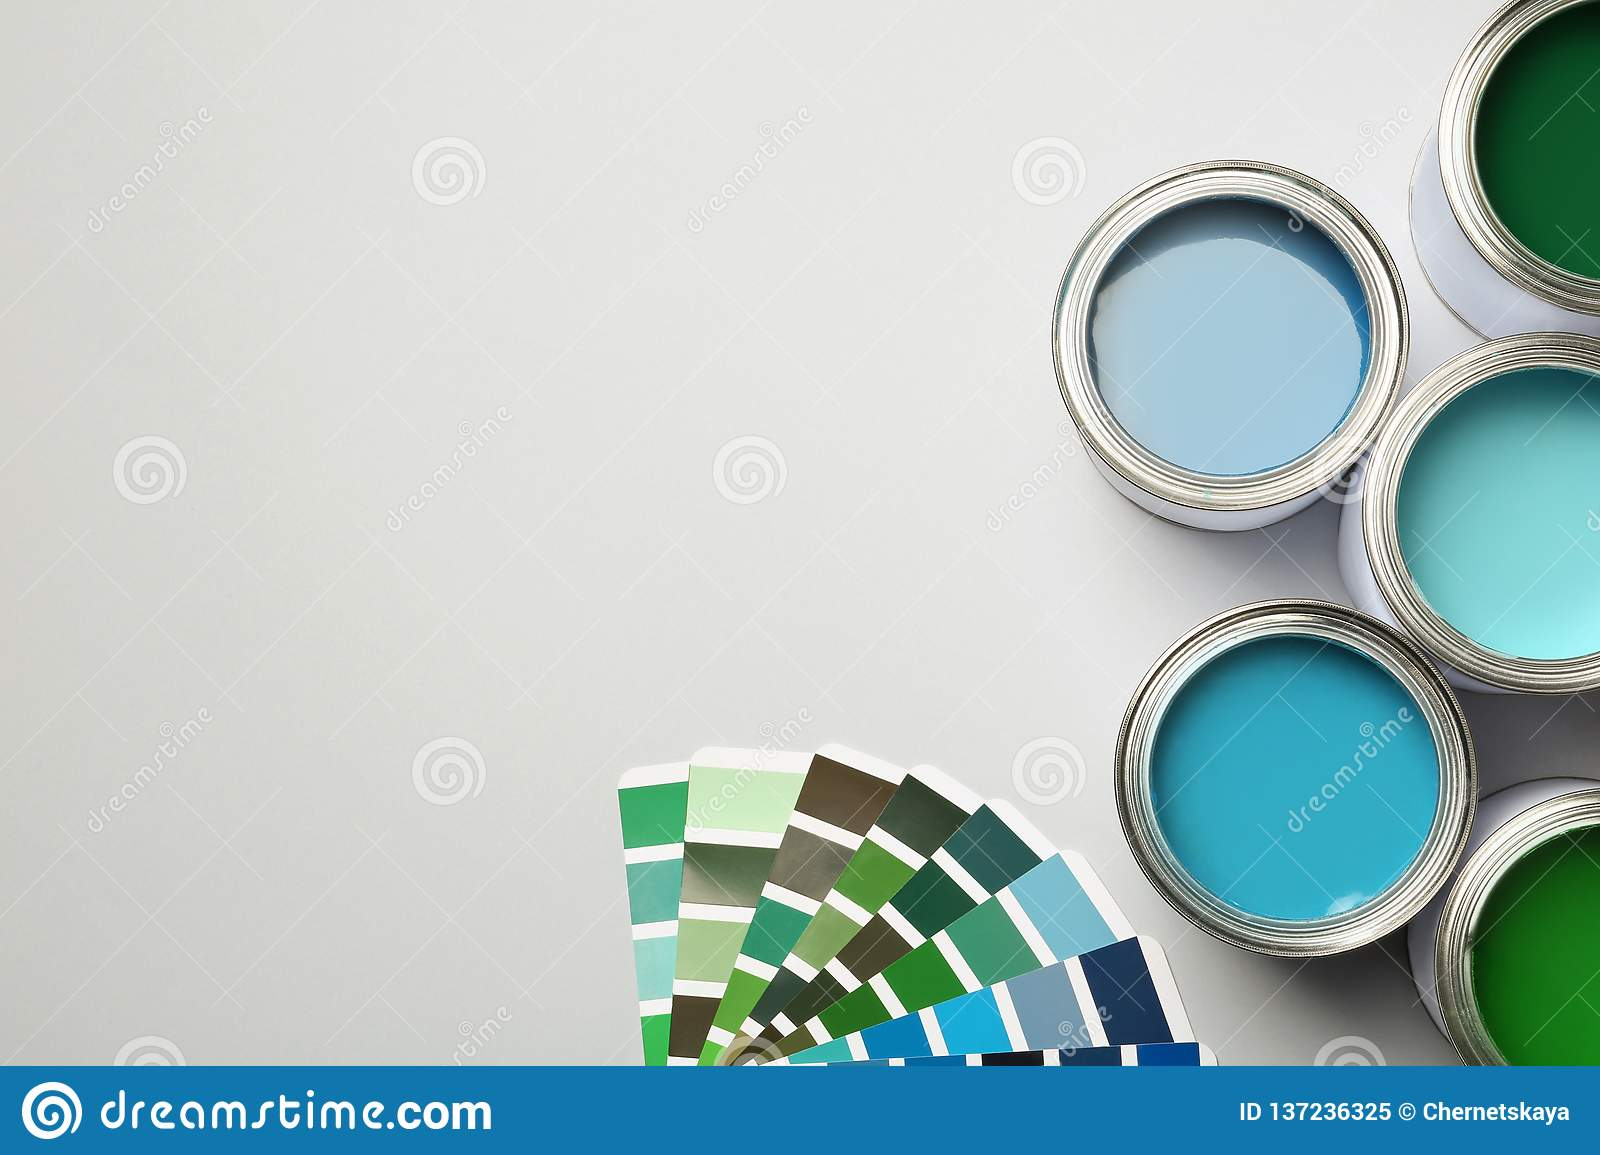 Paint cans and color palette on white background, top view.